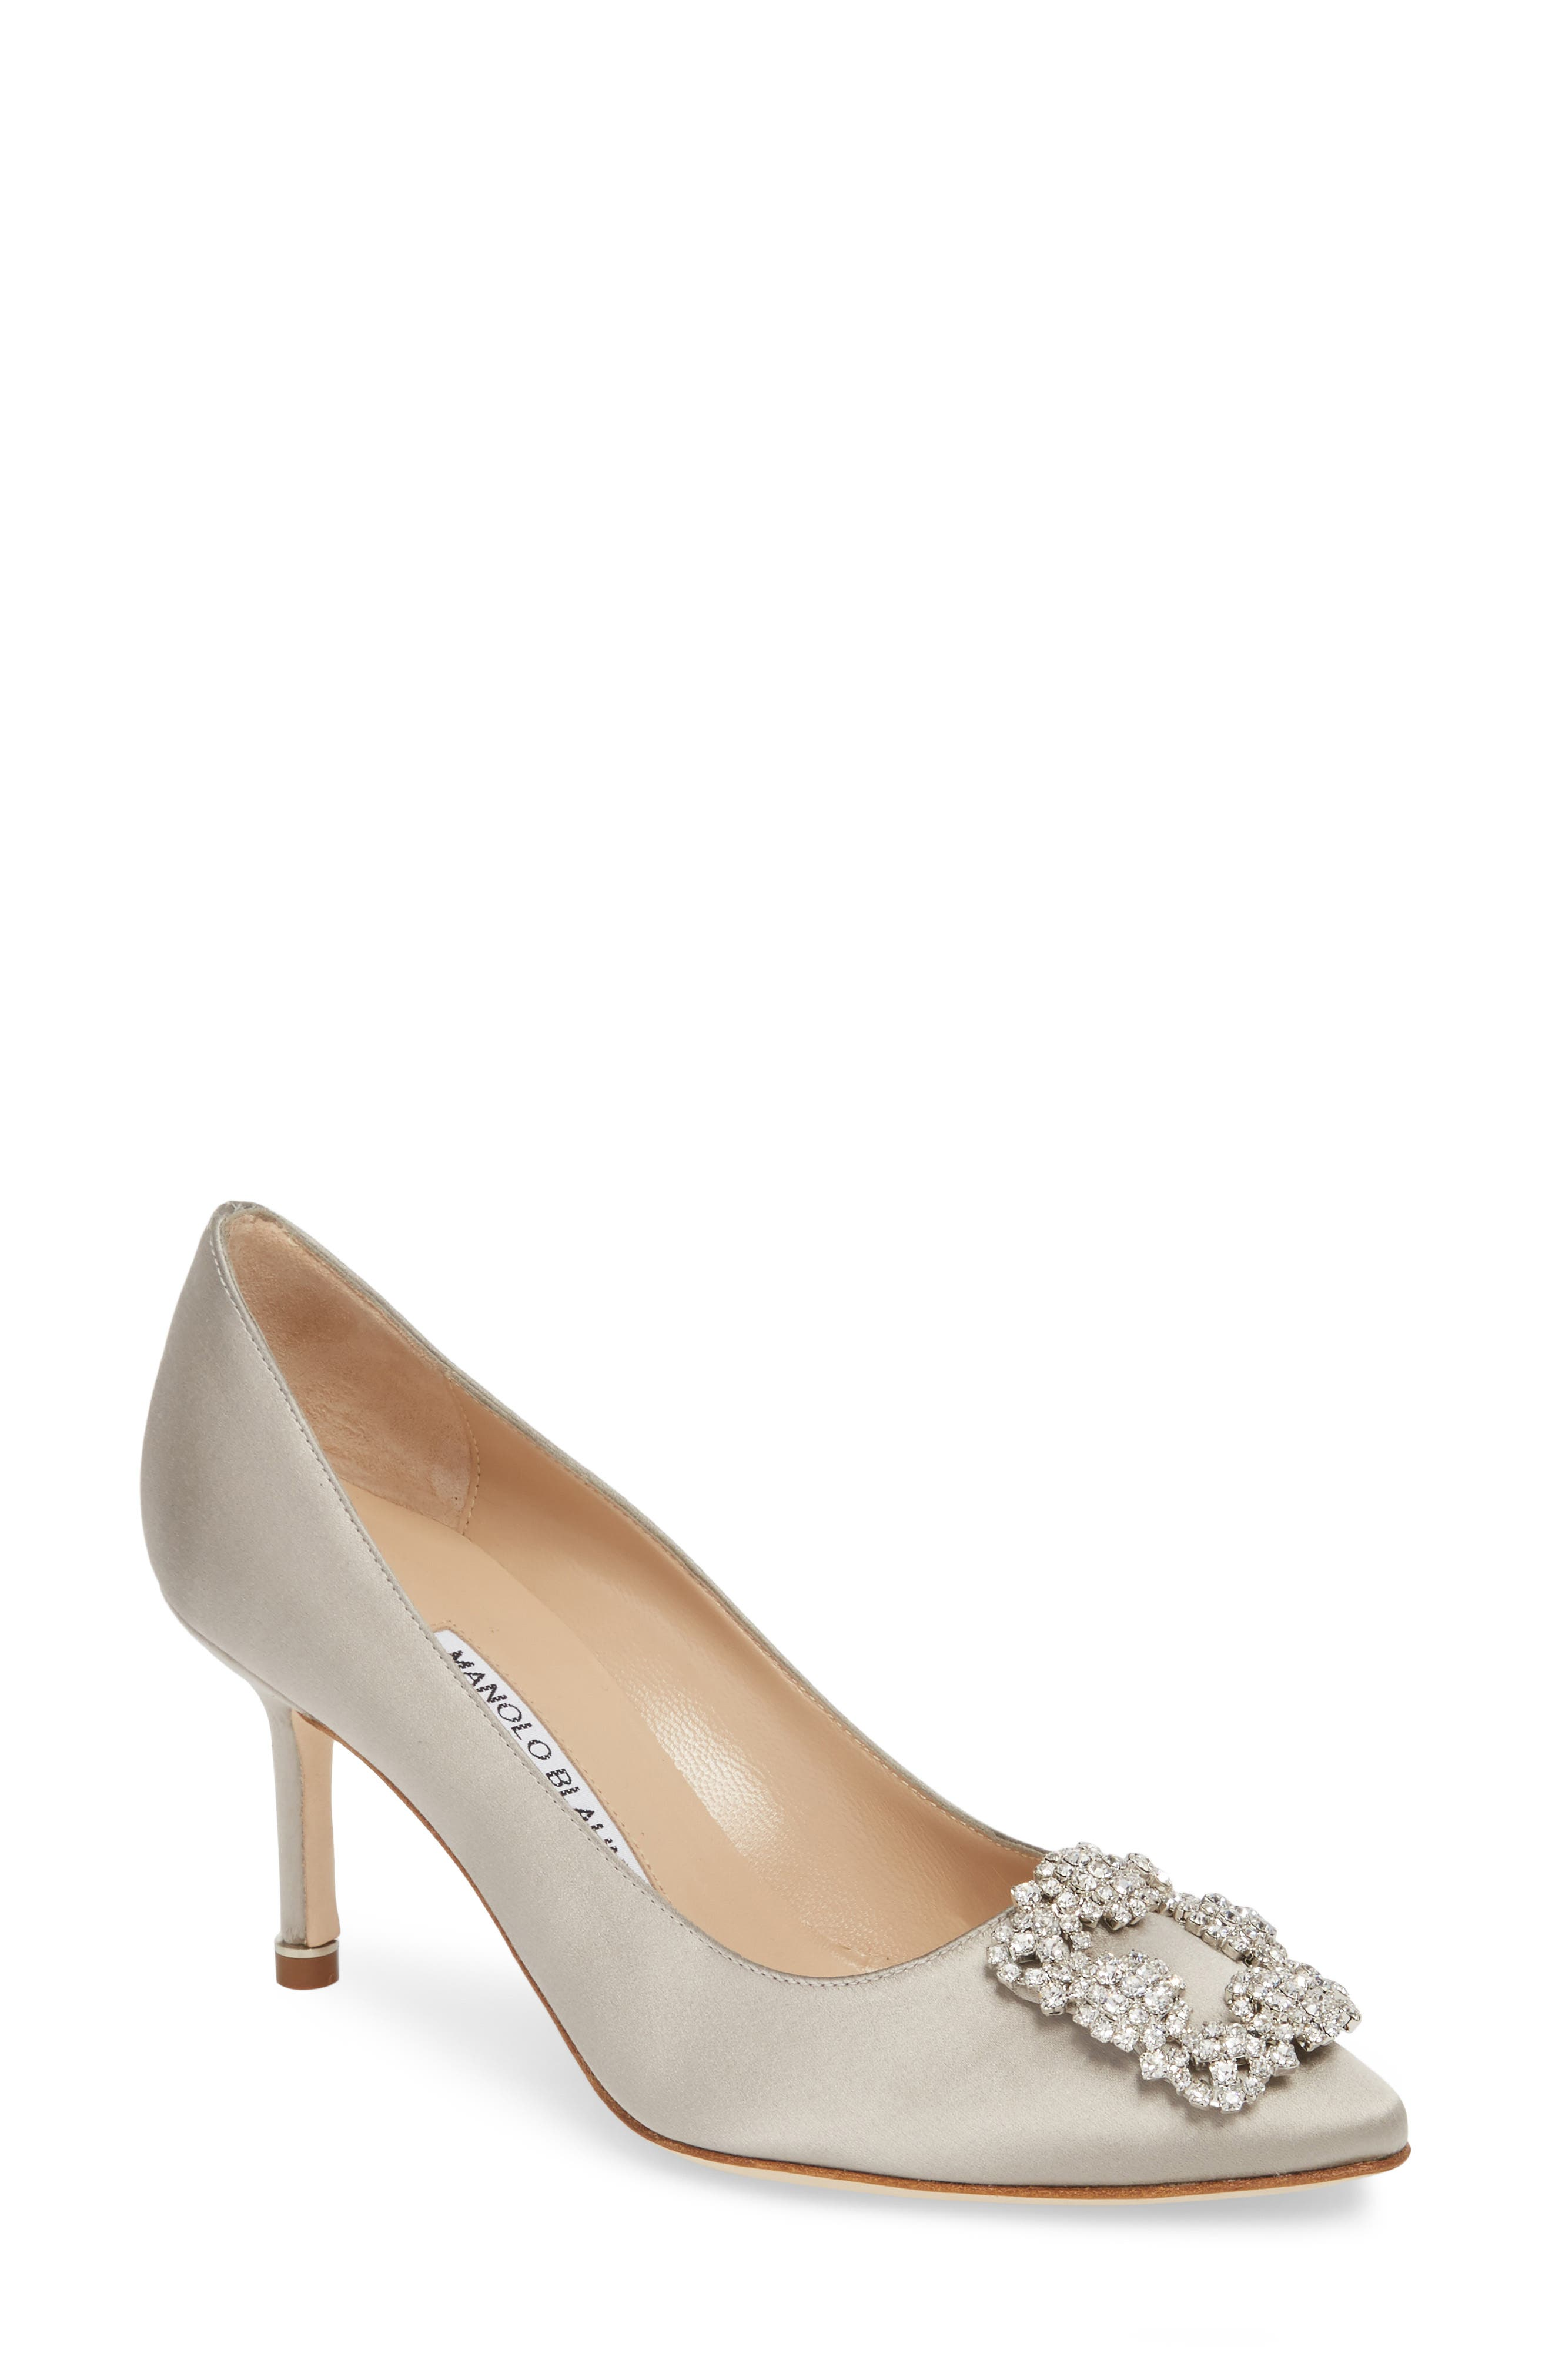 'Hangisi' Pointy Toe Pump,                         Main,                         color, 021